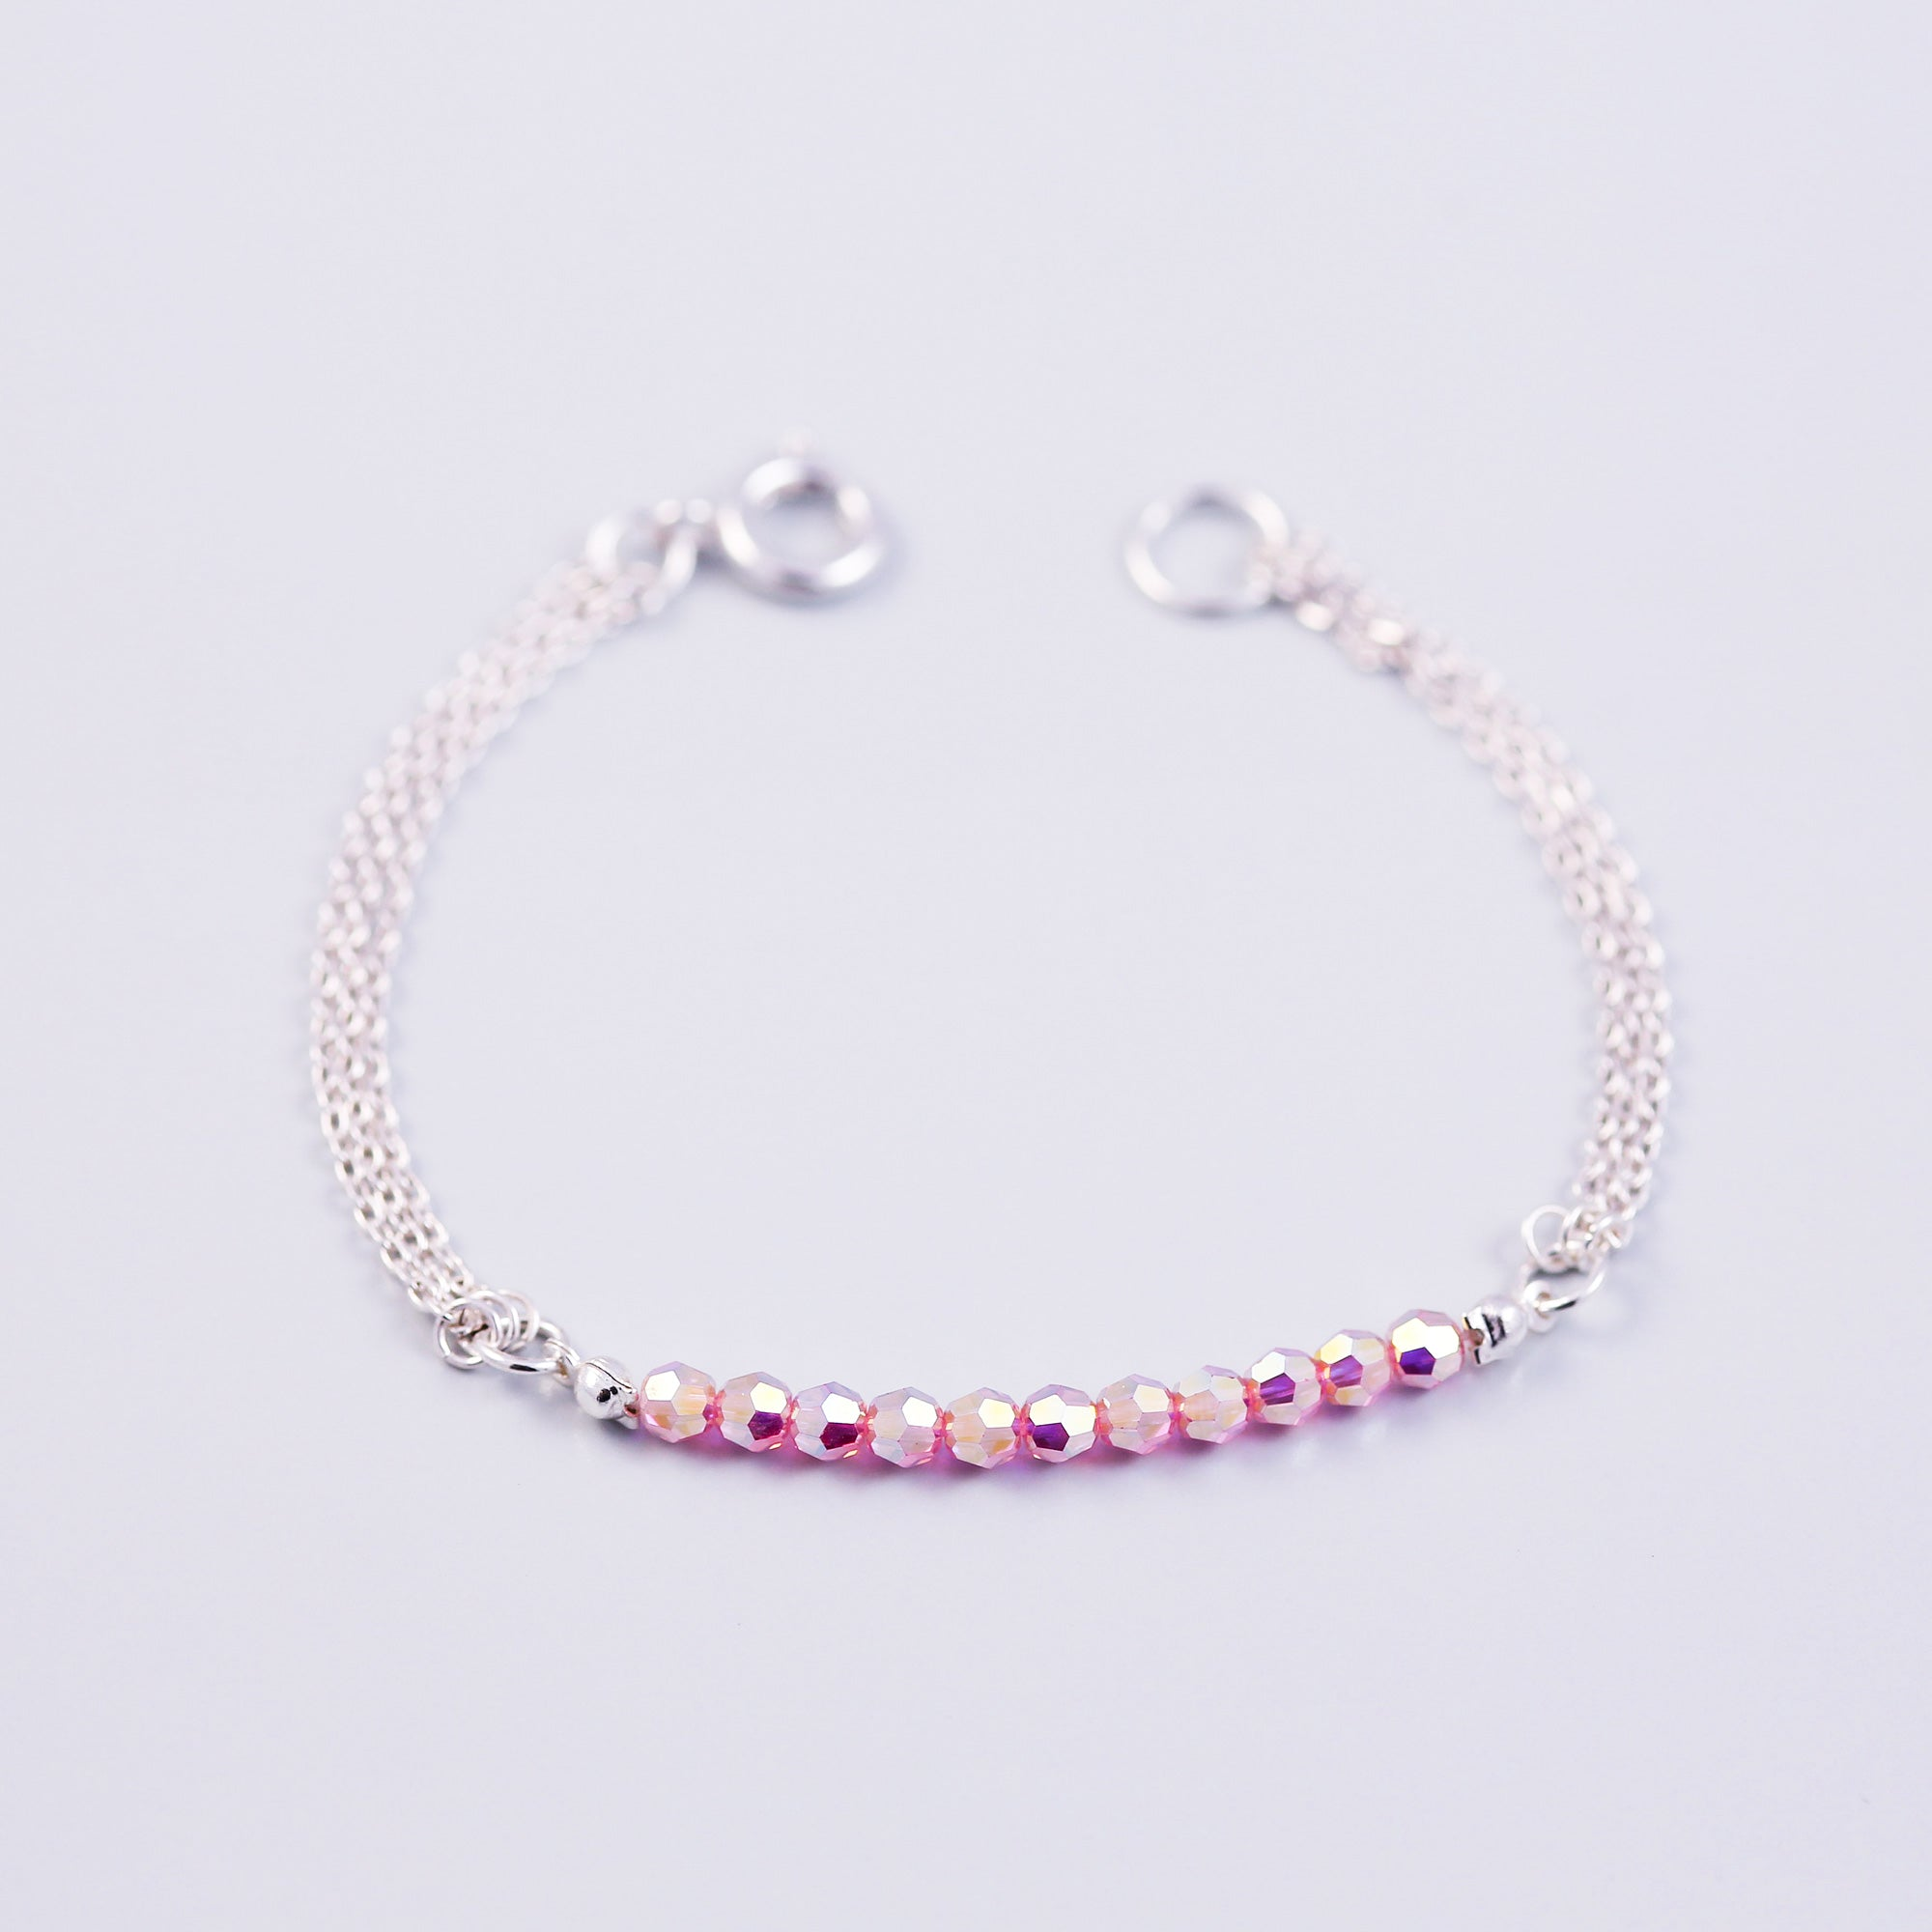 Beaded Bracelet | Cute Friendship Bracelets | Friendship Jewellery | Silver & Light Rose AB